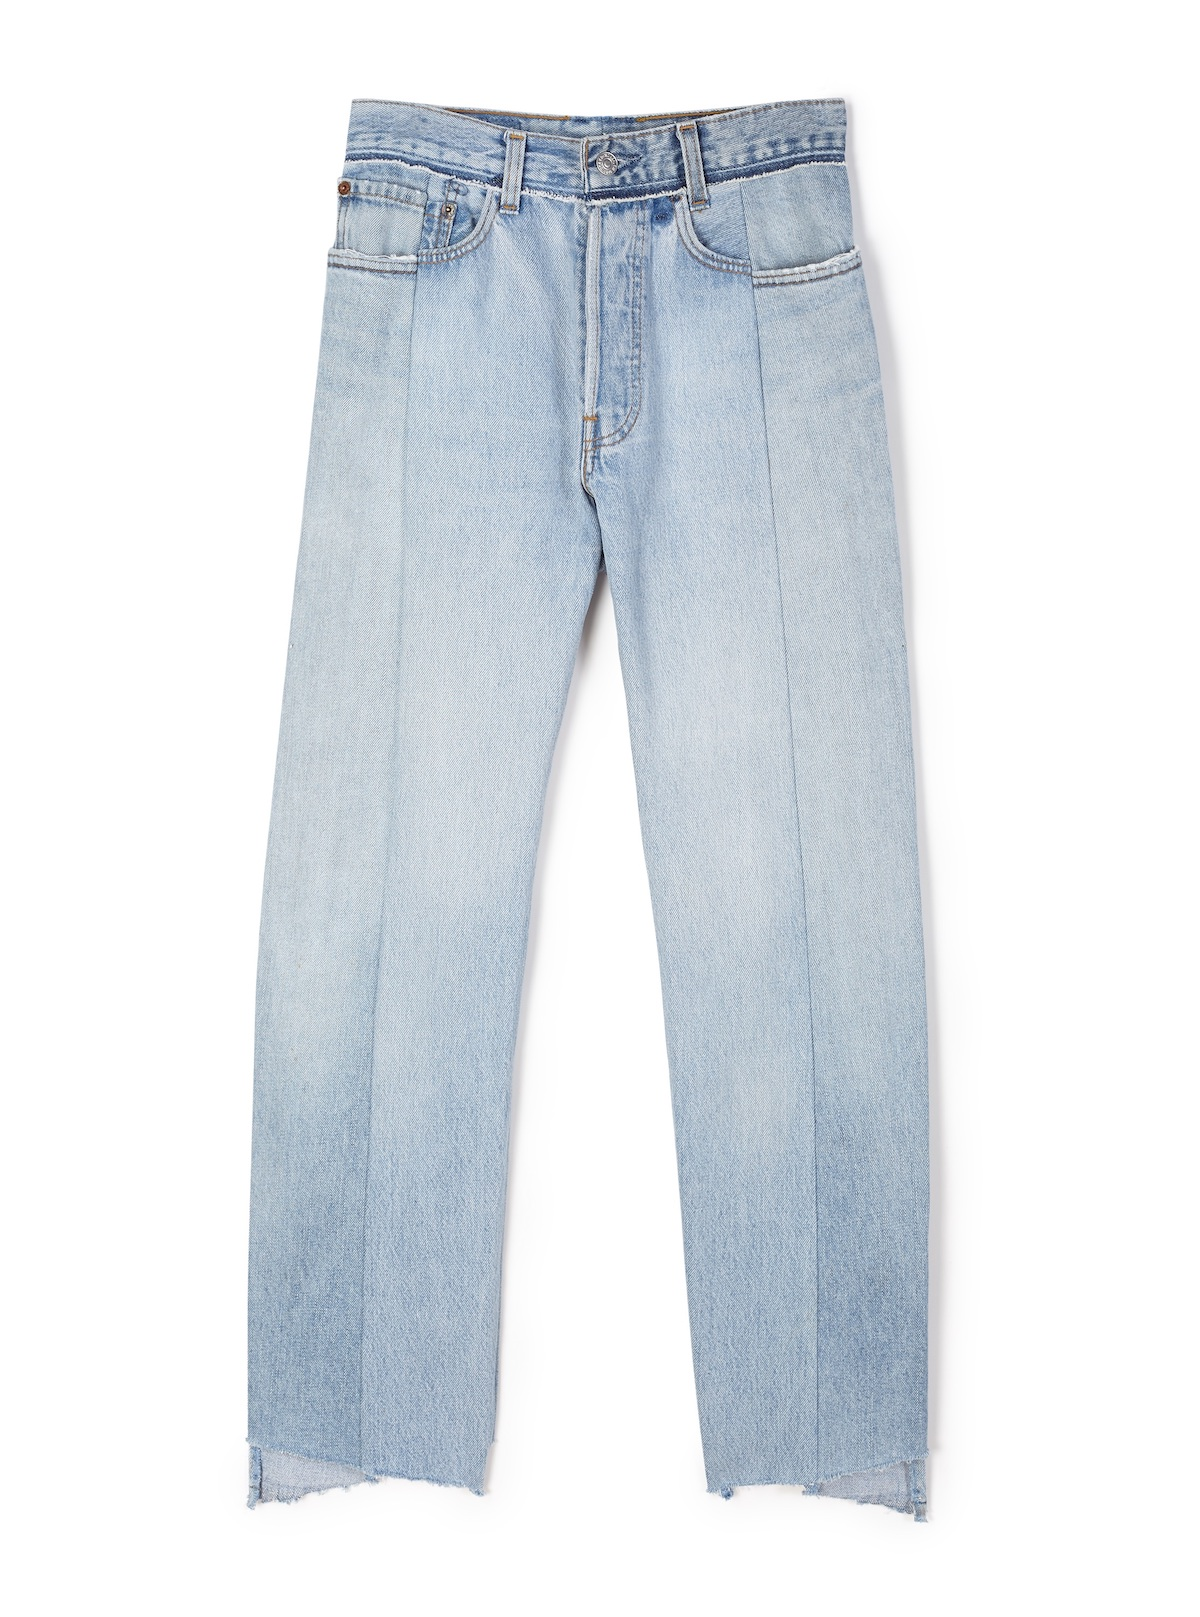 Vetements Reworked Blue Jeans